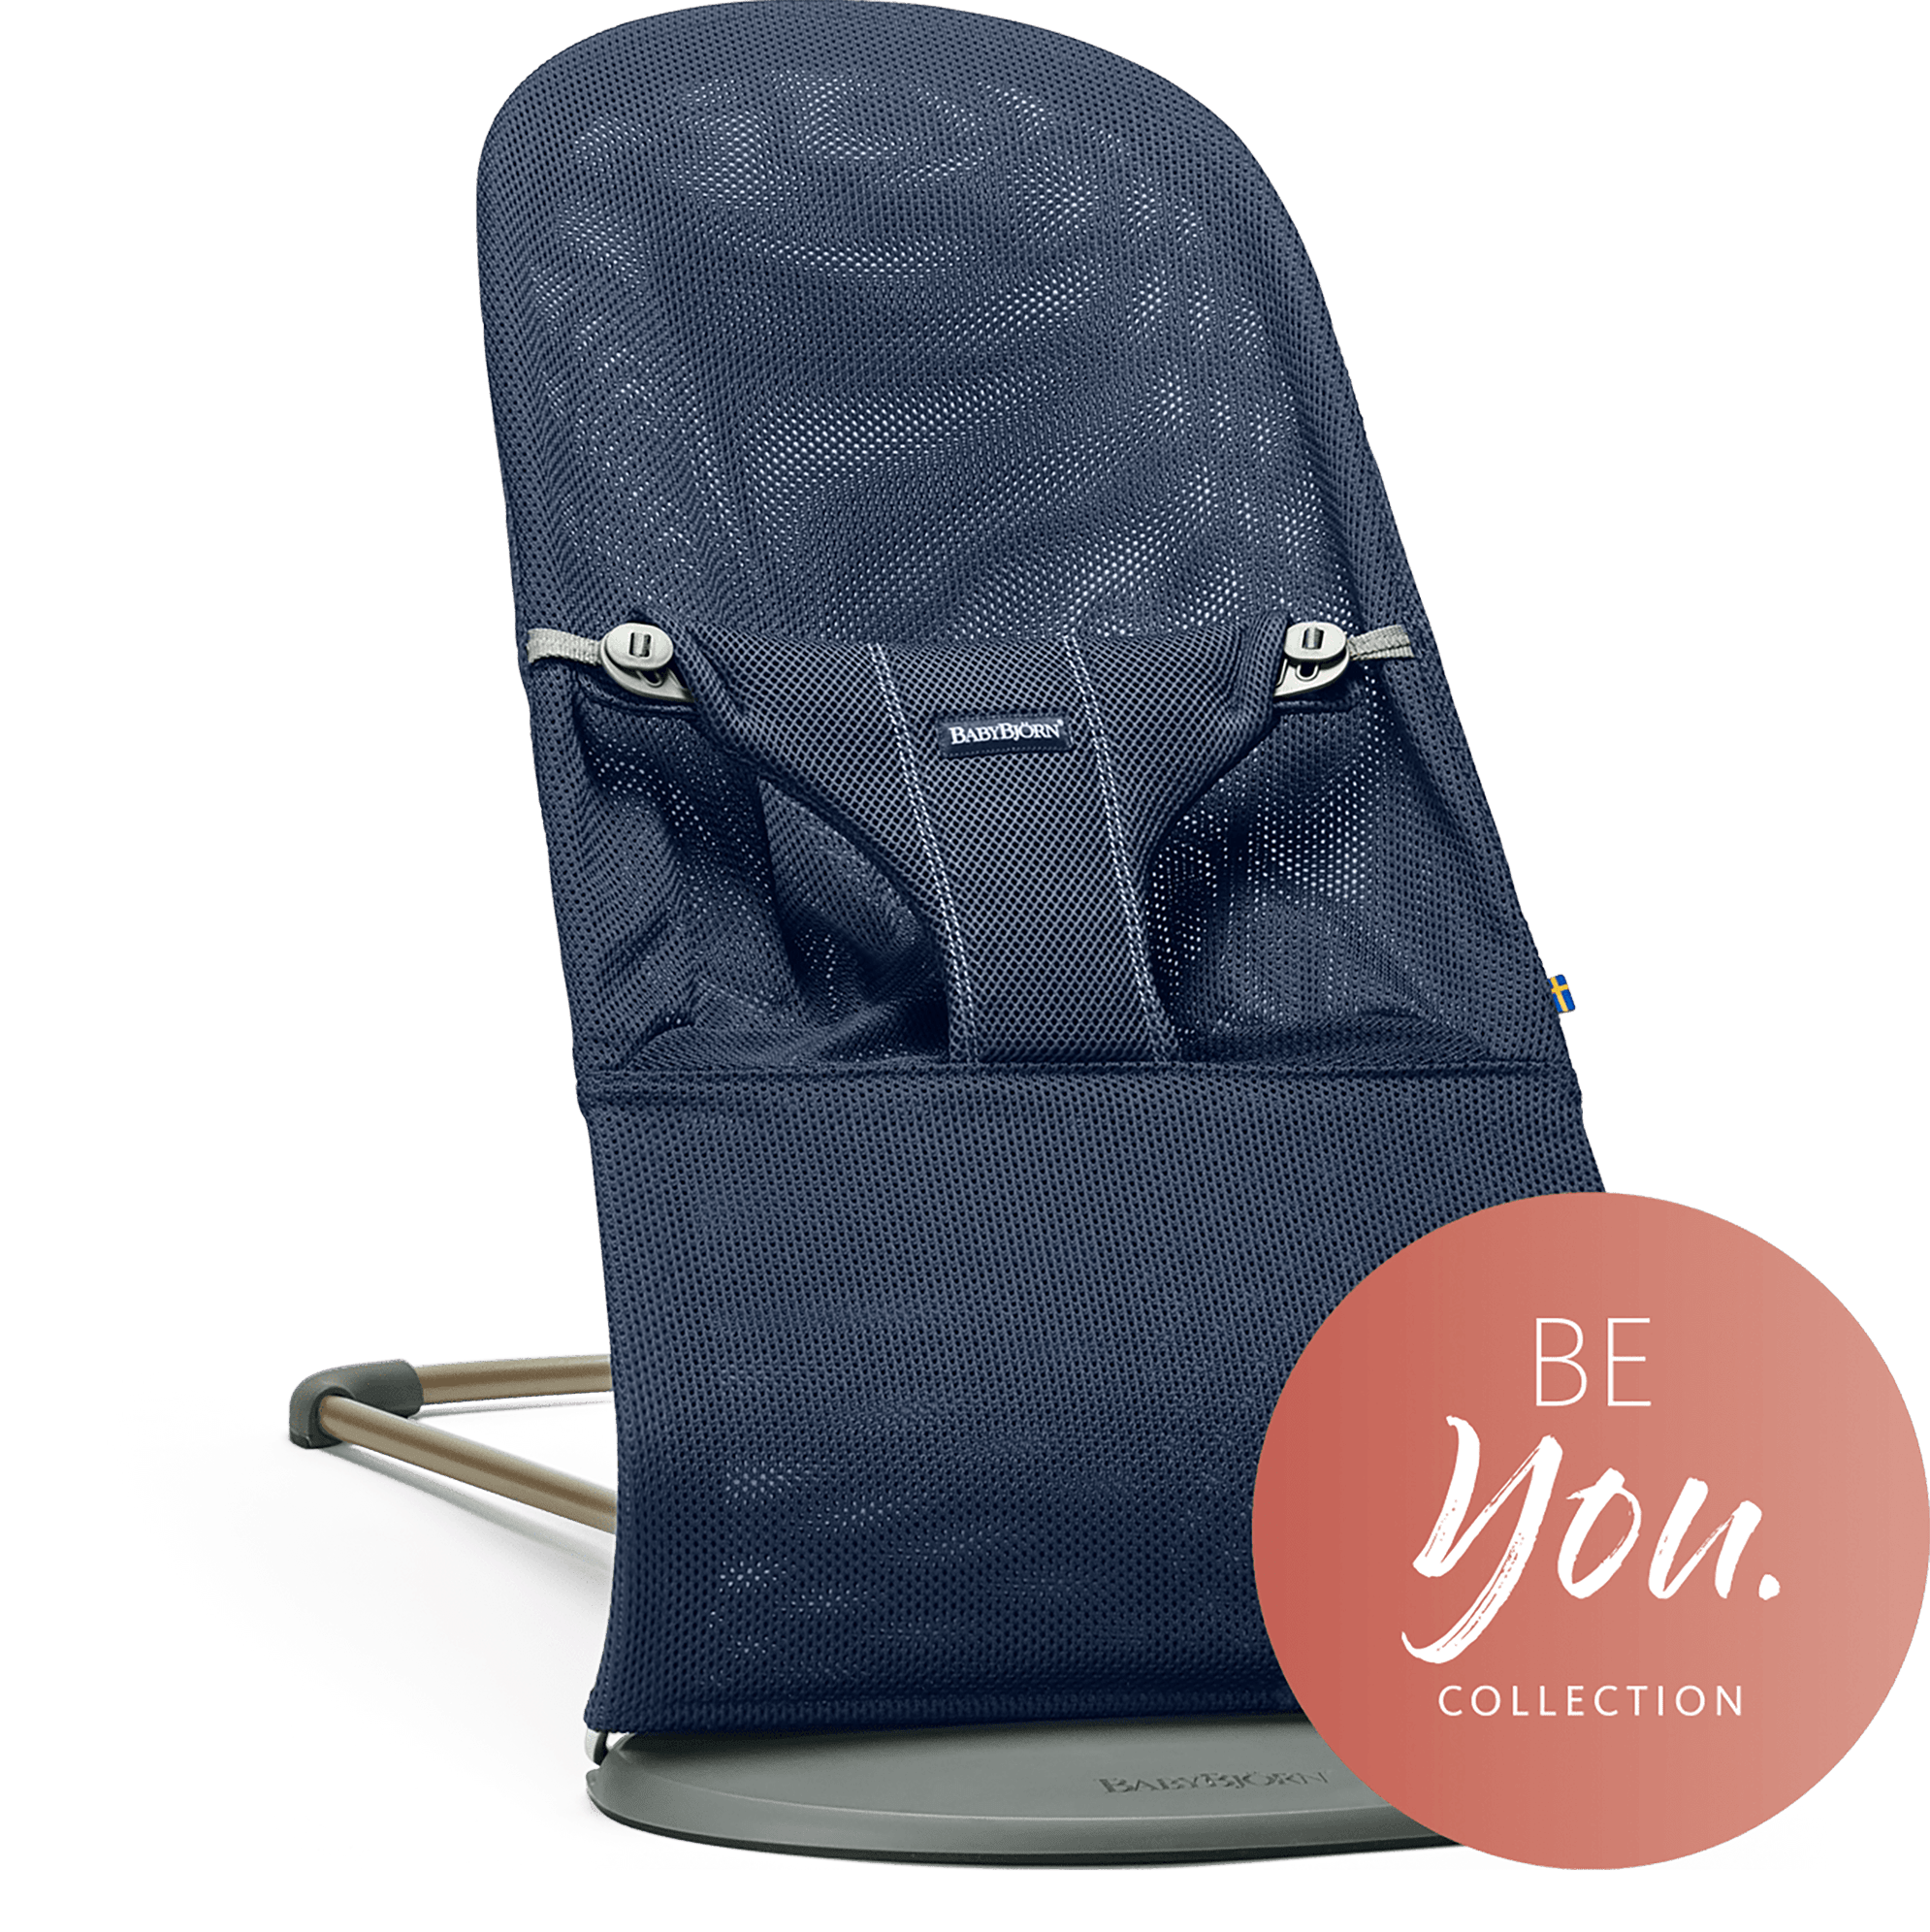 Lehátko Babybjorn Bouncer Bliss Navy blue Mesh kolekce BE YOU